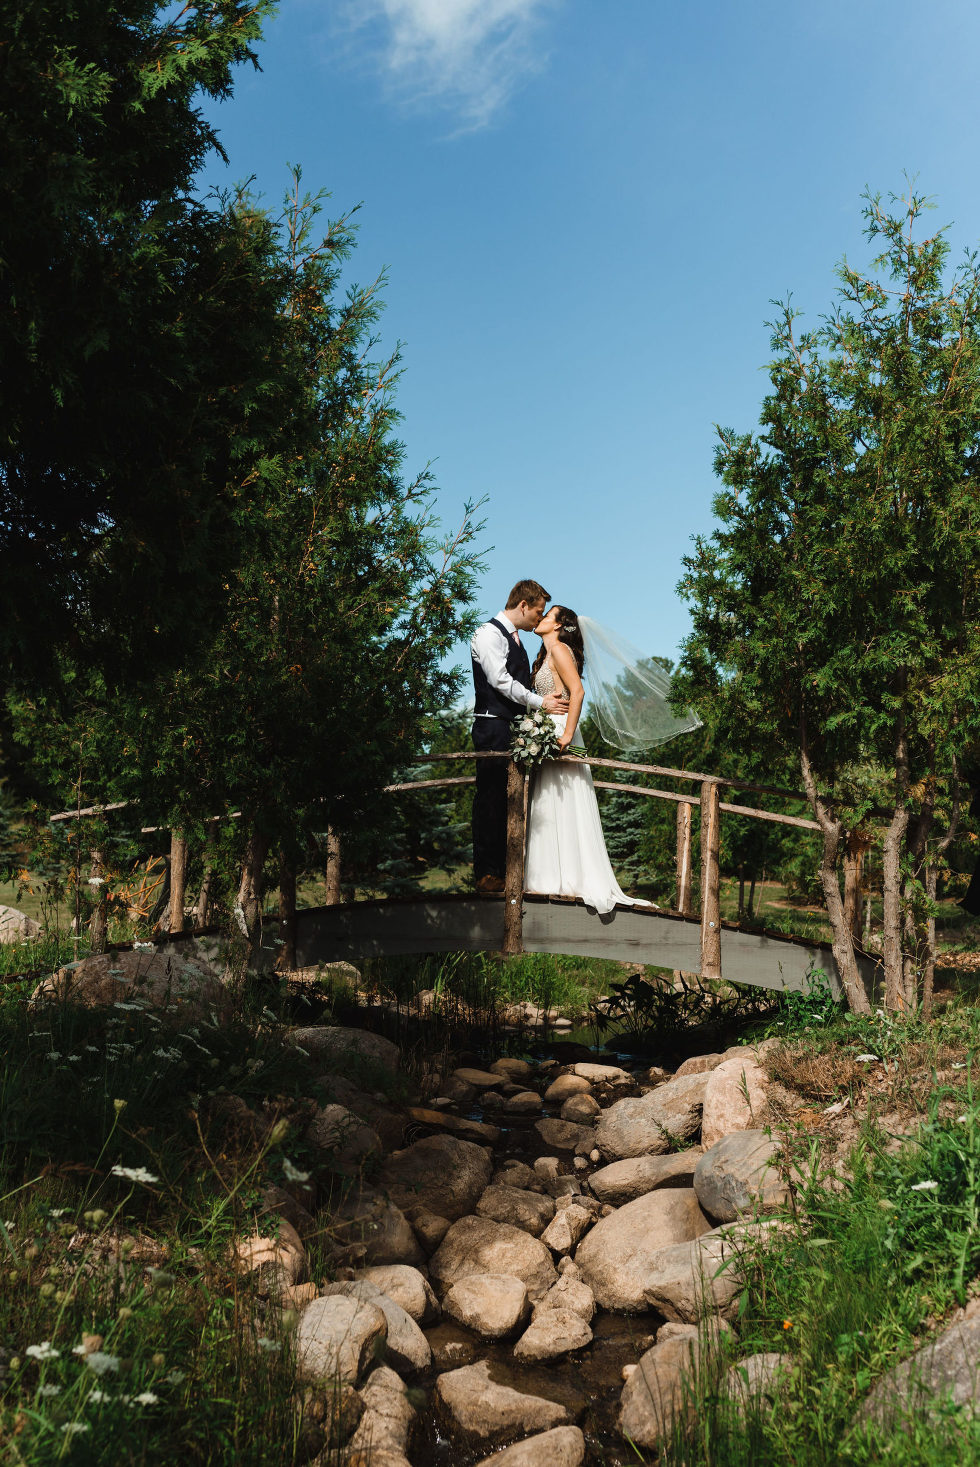 bride and groom kissing on a bridge over a stream during their special wedding at Carvers cottage in Pickering